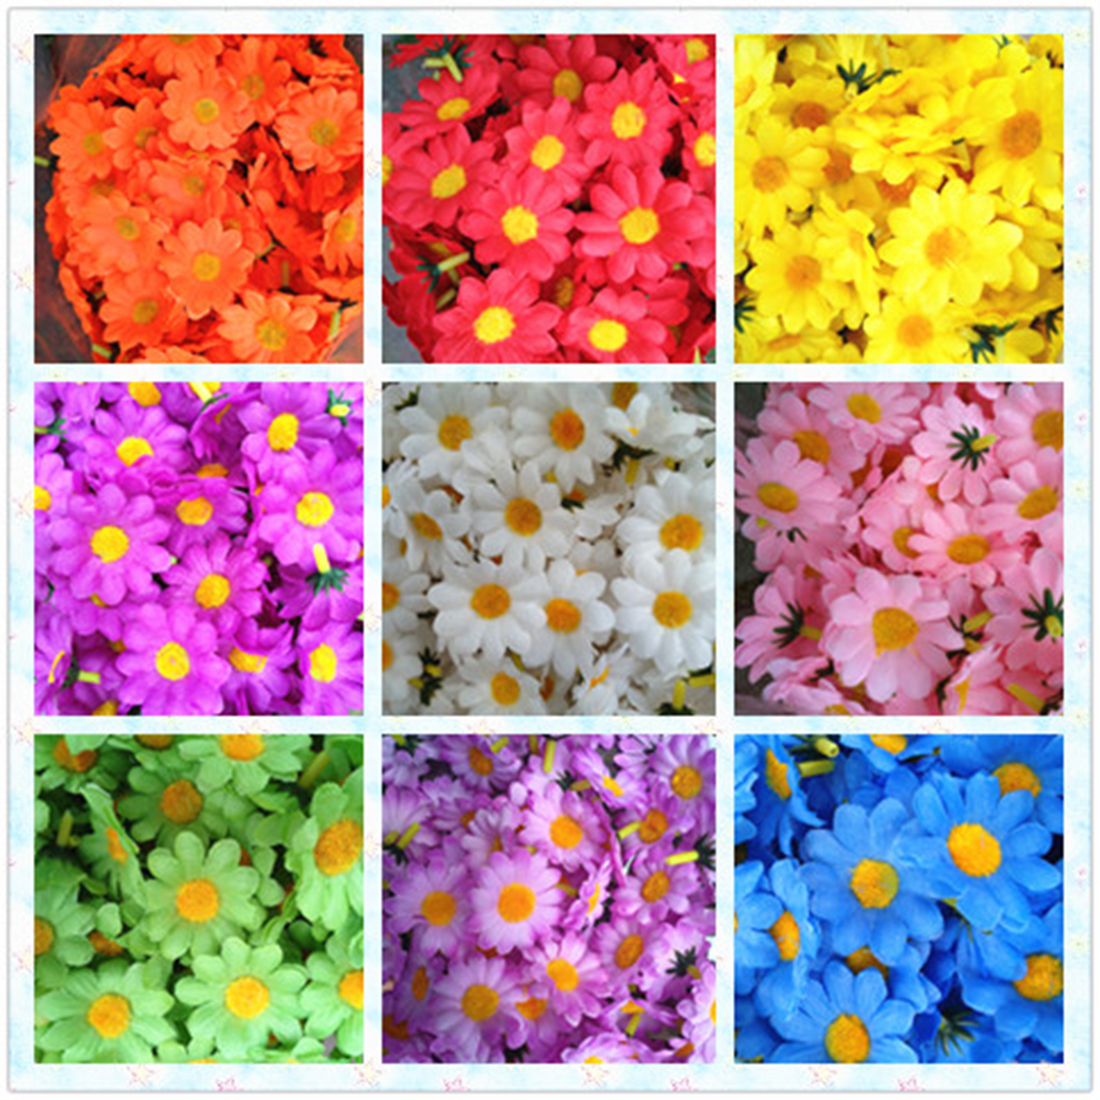 Sunflower Artificial Silk Flower Heads for wedding birthday party decor 100Pcs/set Hot Selling(China (Mainland))